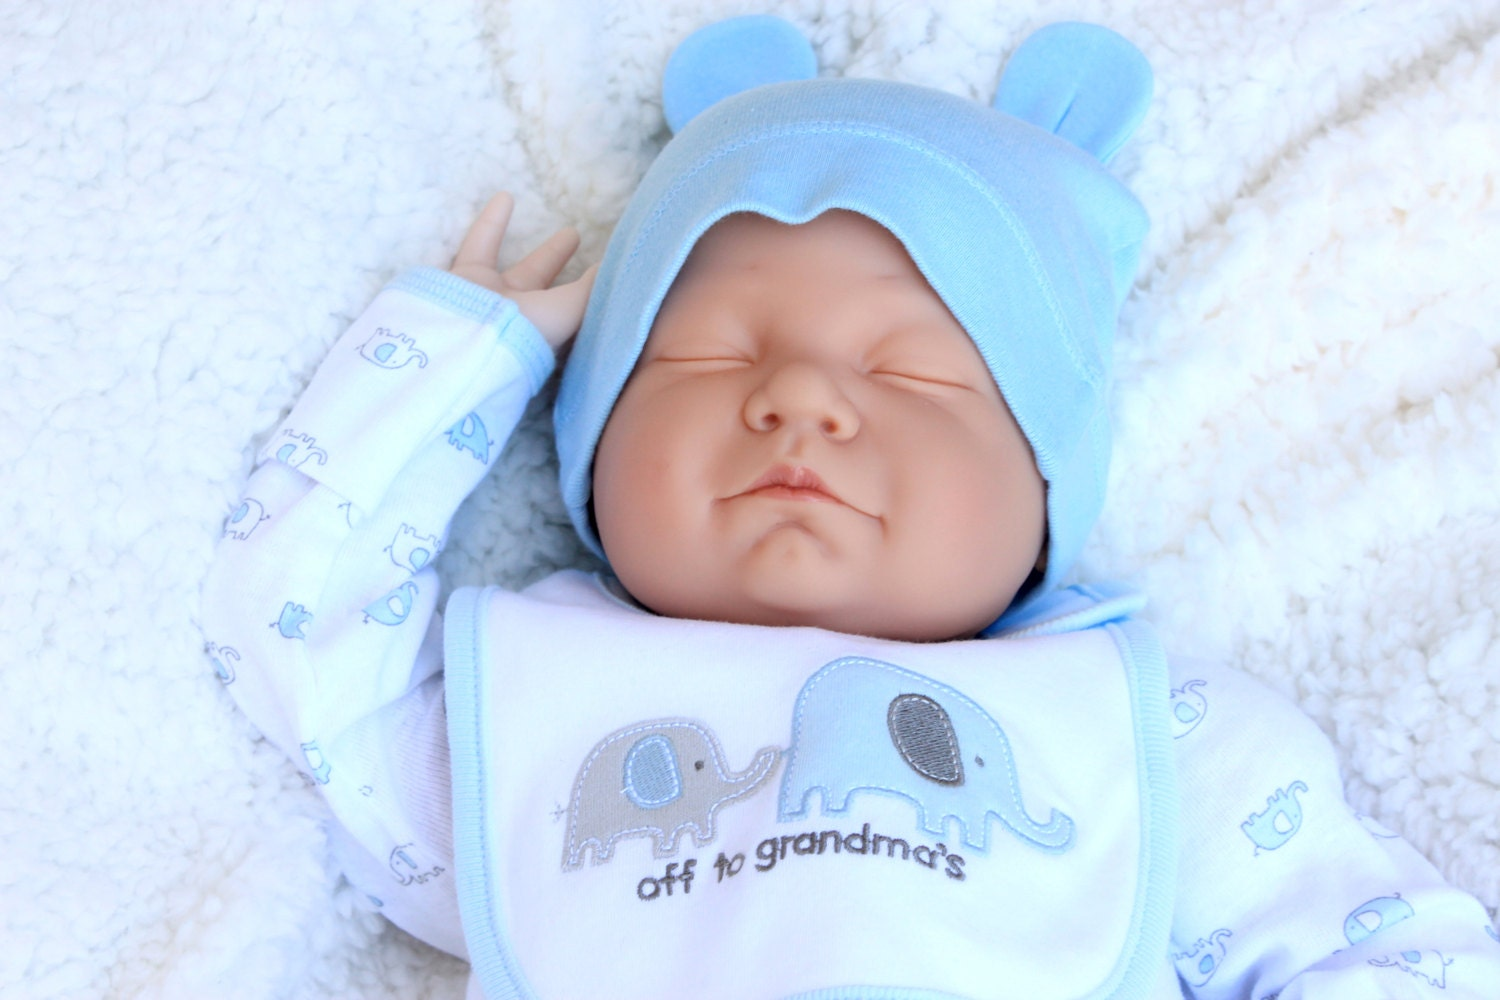 Christmas Gifts Life Size Reborn Baby Doll By Spoiledmunchkins